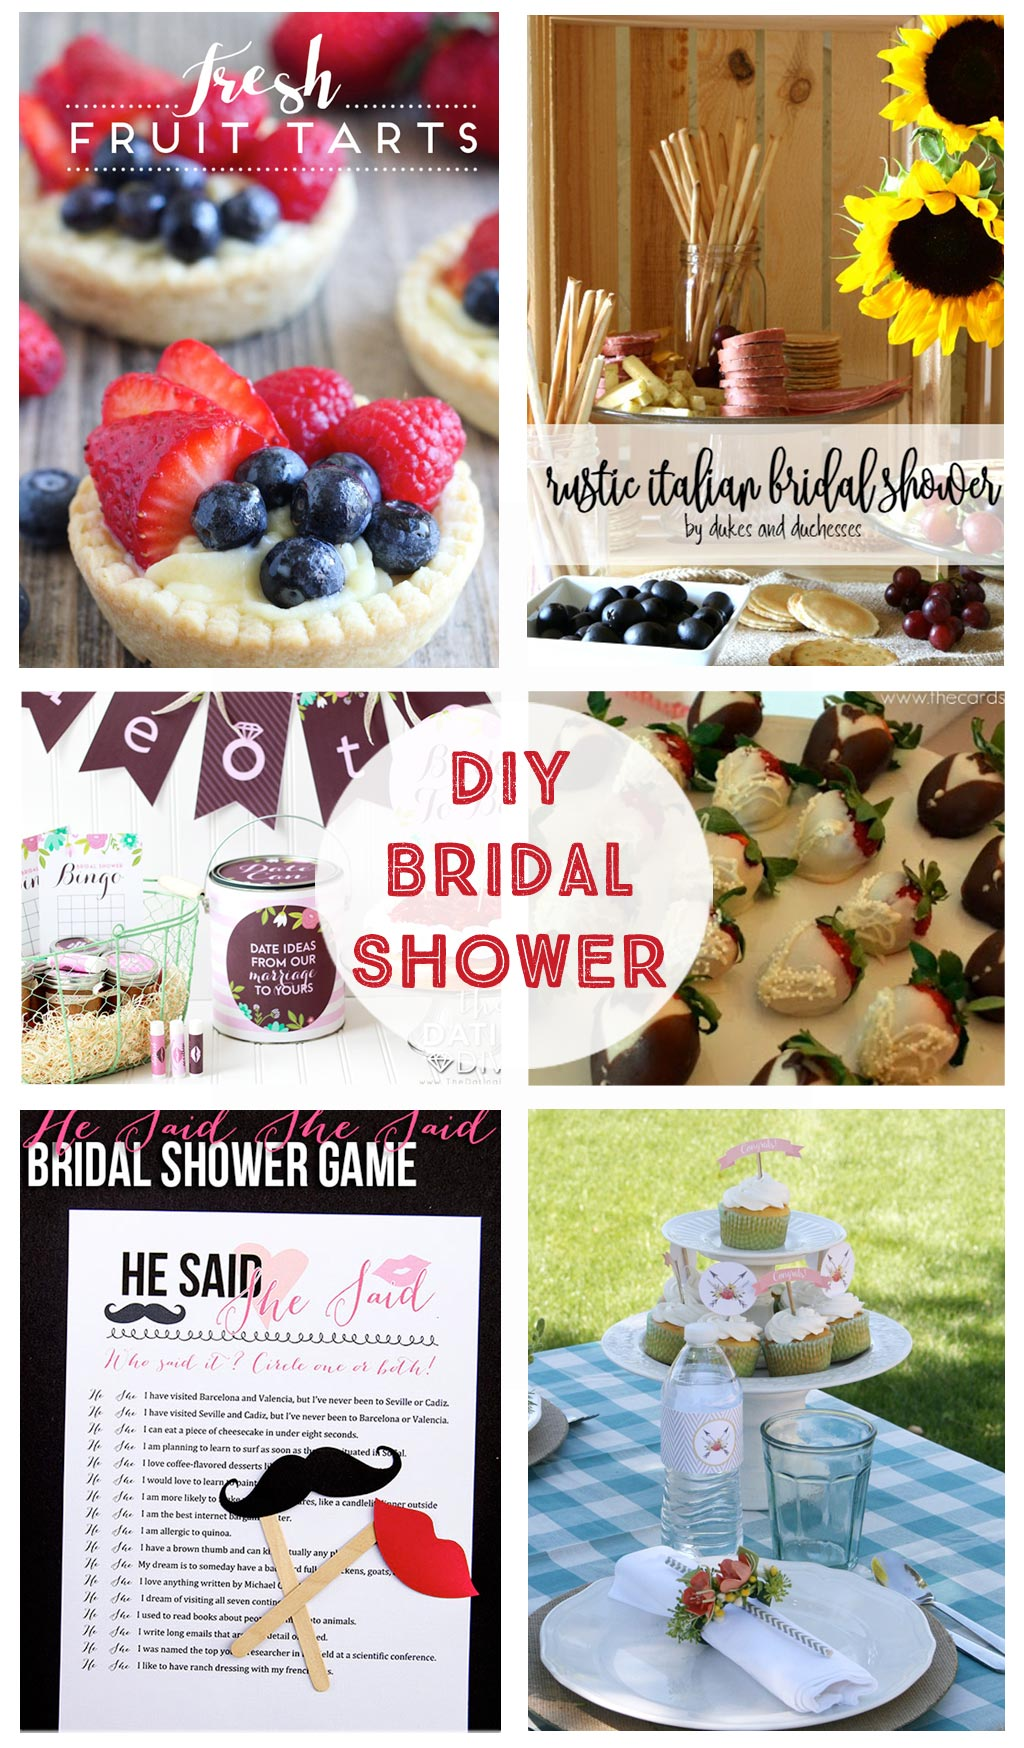 Wedding Gift Ideas Activities : Bridal Shower Printables, Games, Recipes, Decorations, and Gift Ideas ...